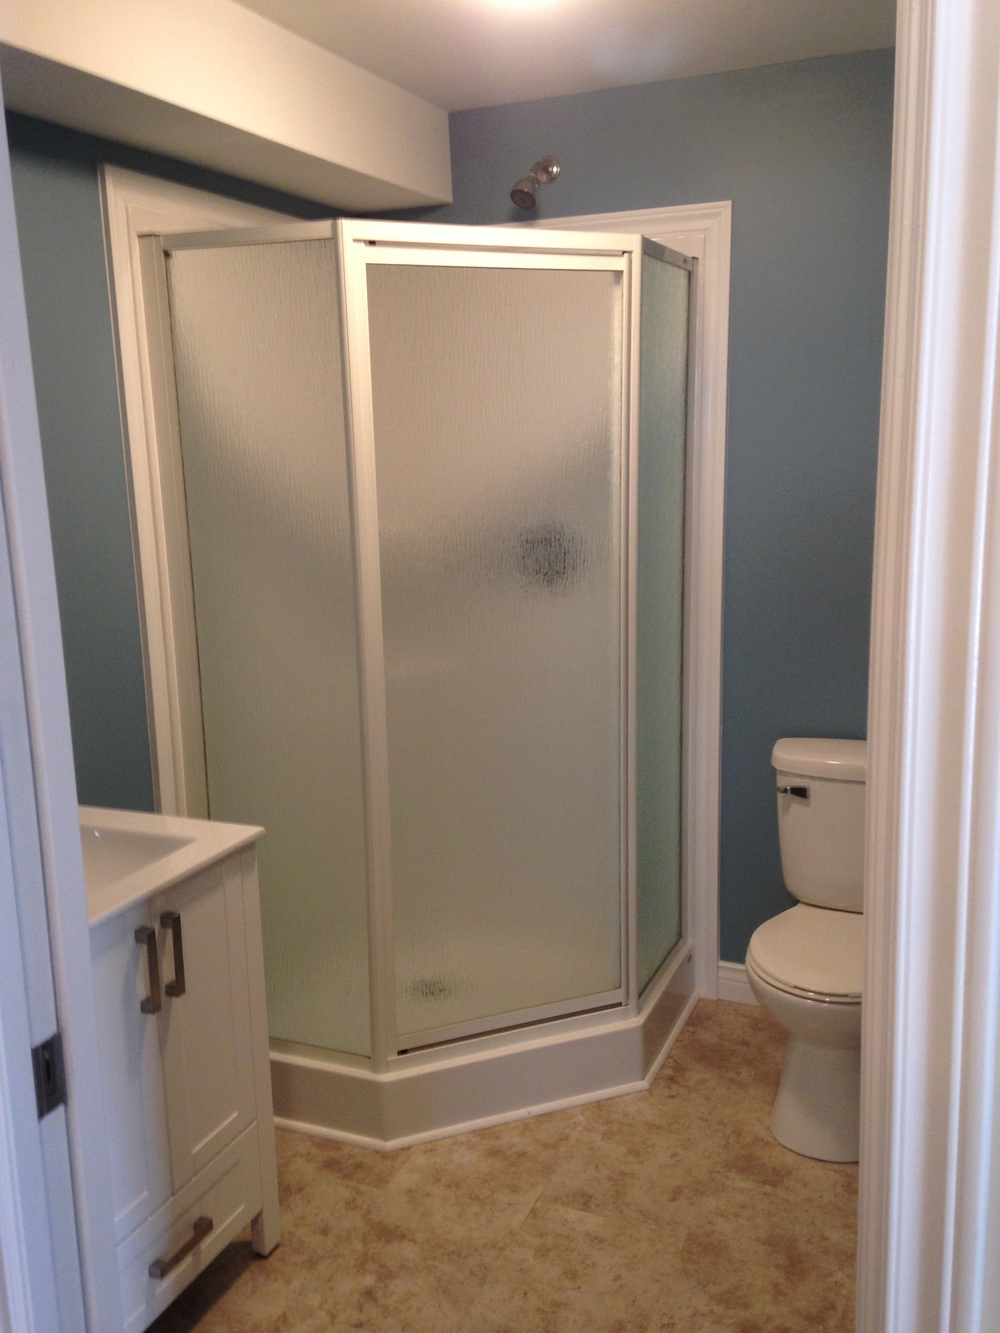 New neo angle shower, toilet and vanity